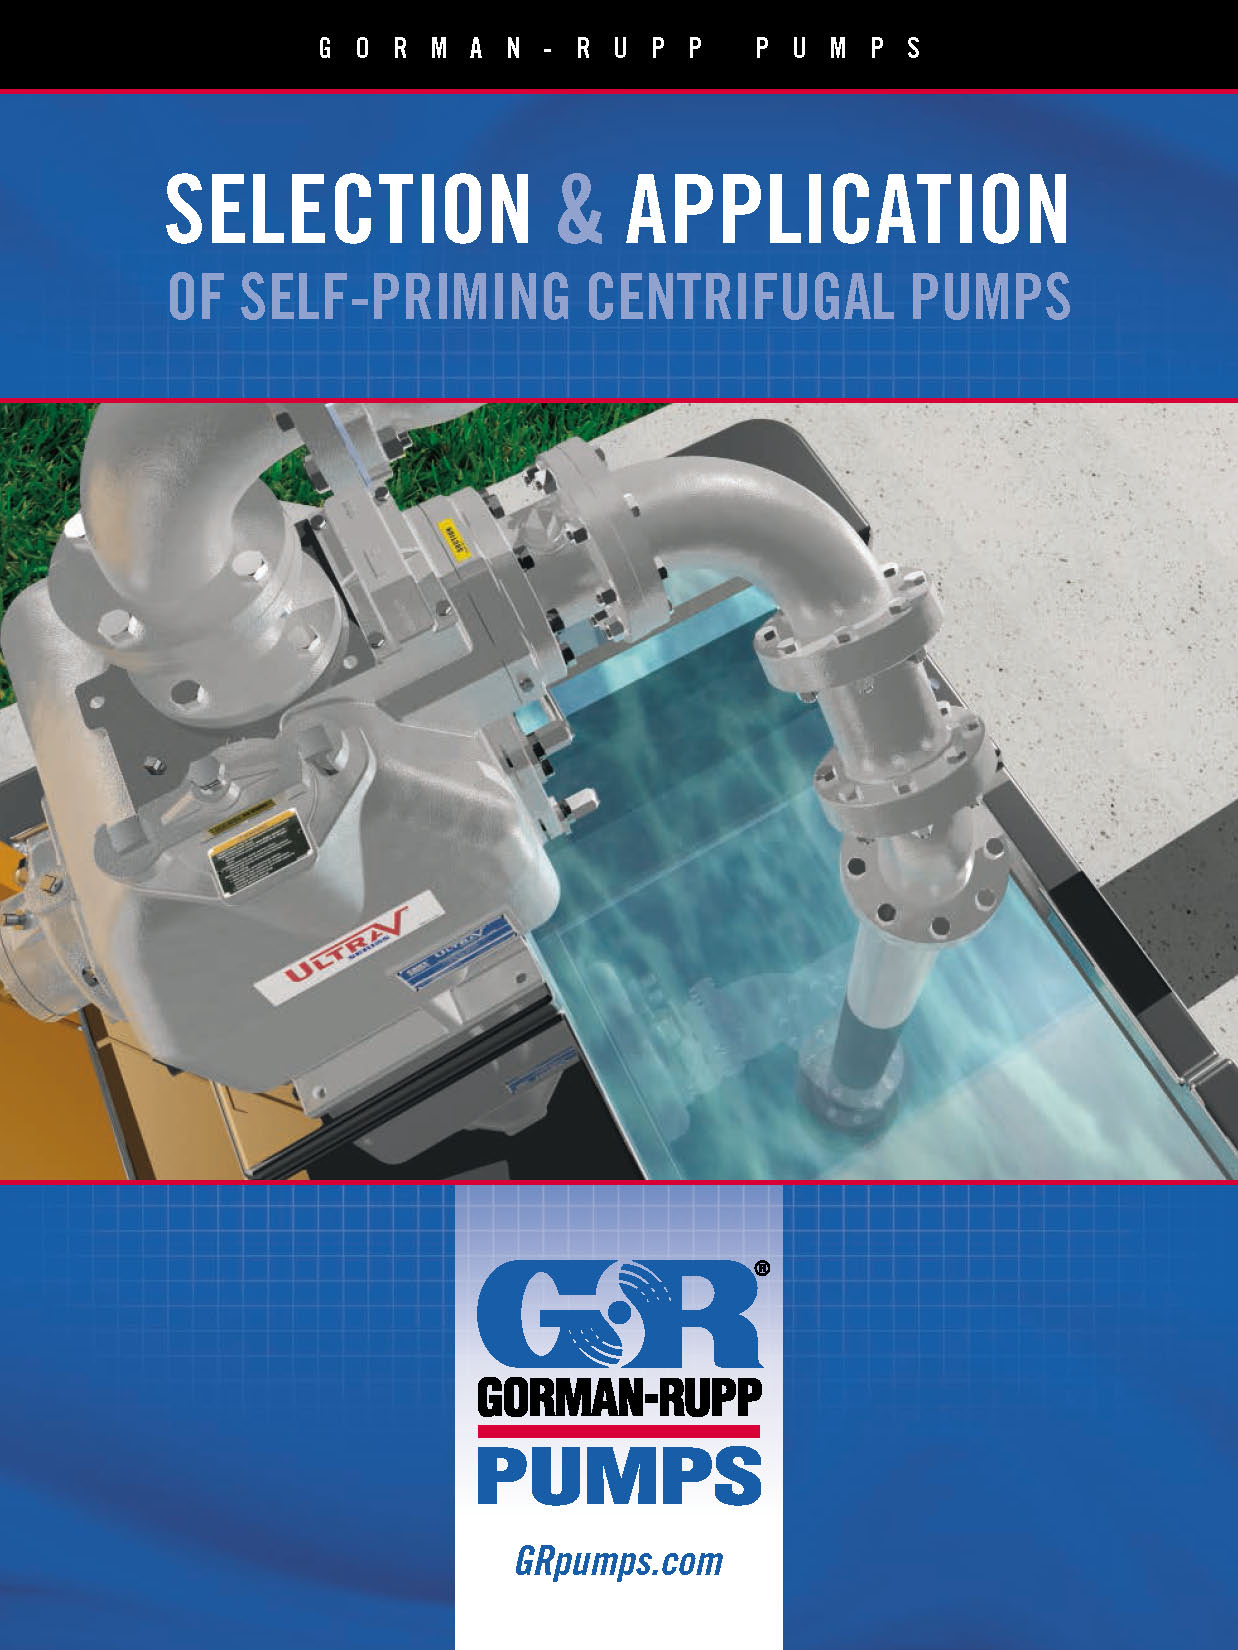 Gorman-Rupp SELF-PRIMING CENTRIFUGAL PUMPS brochure pdf